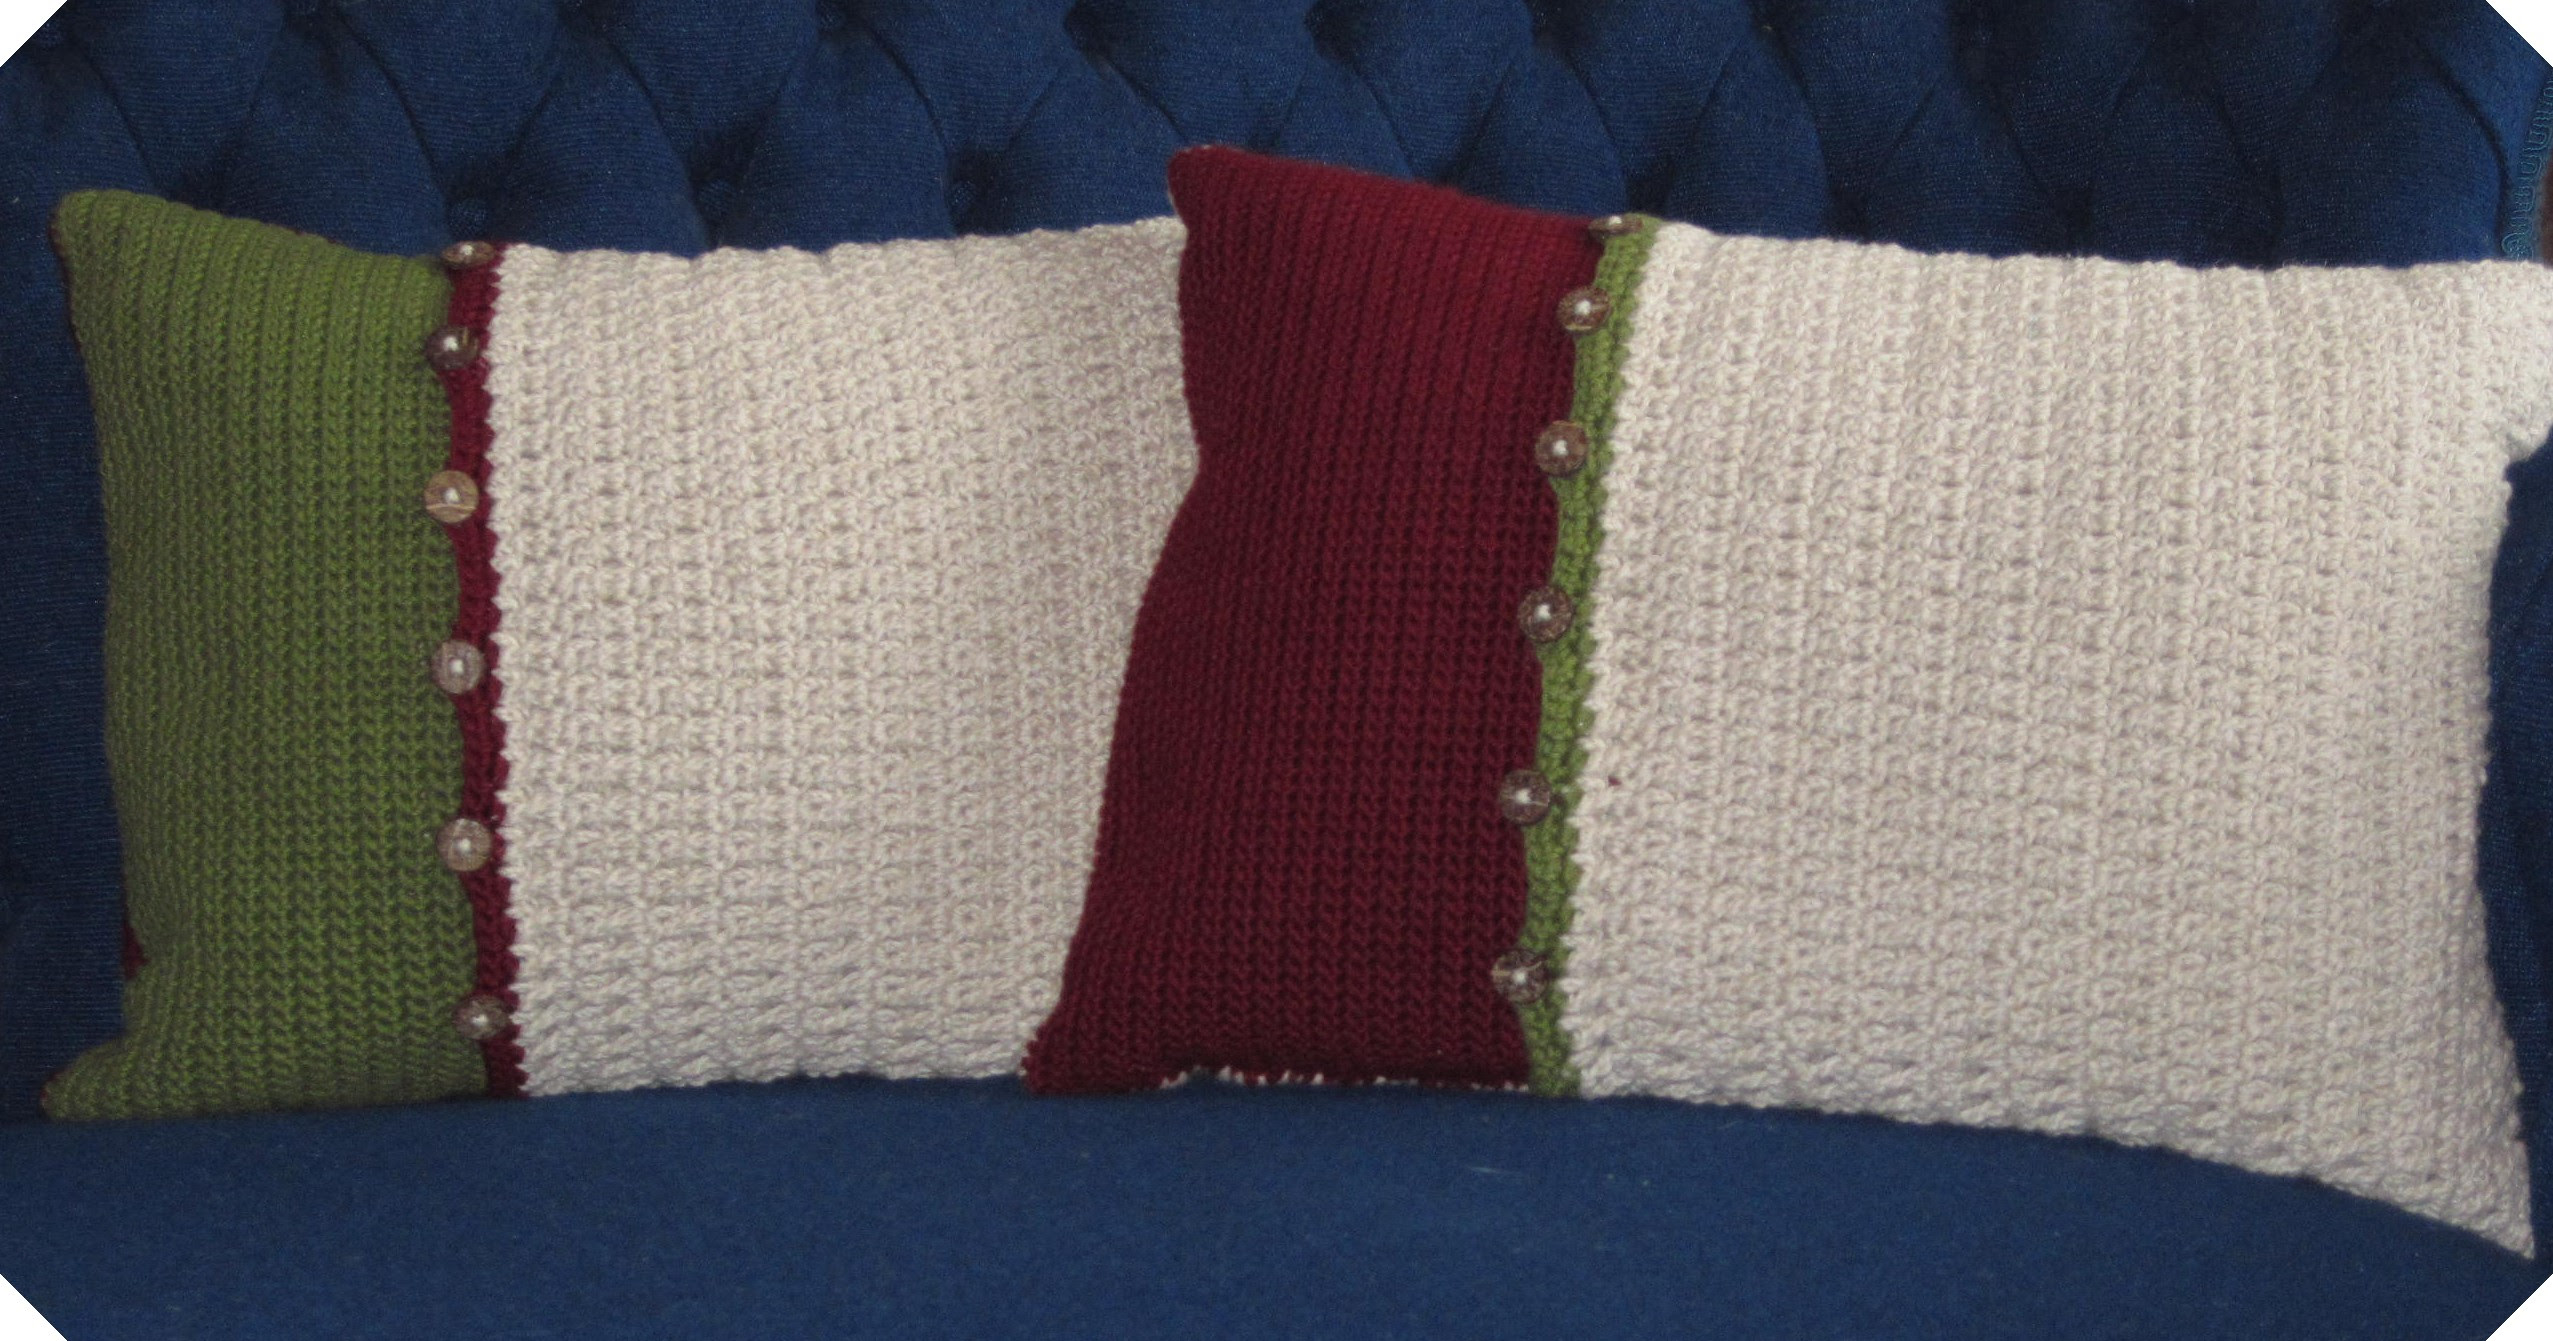 Sweater Back Crochet Pillows | Flickr - Photo Sharing!